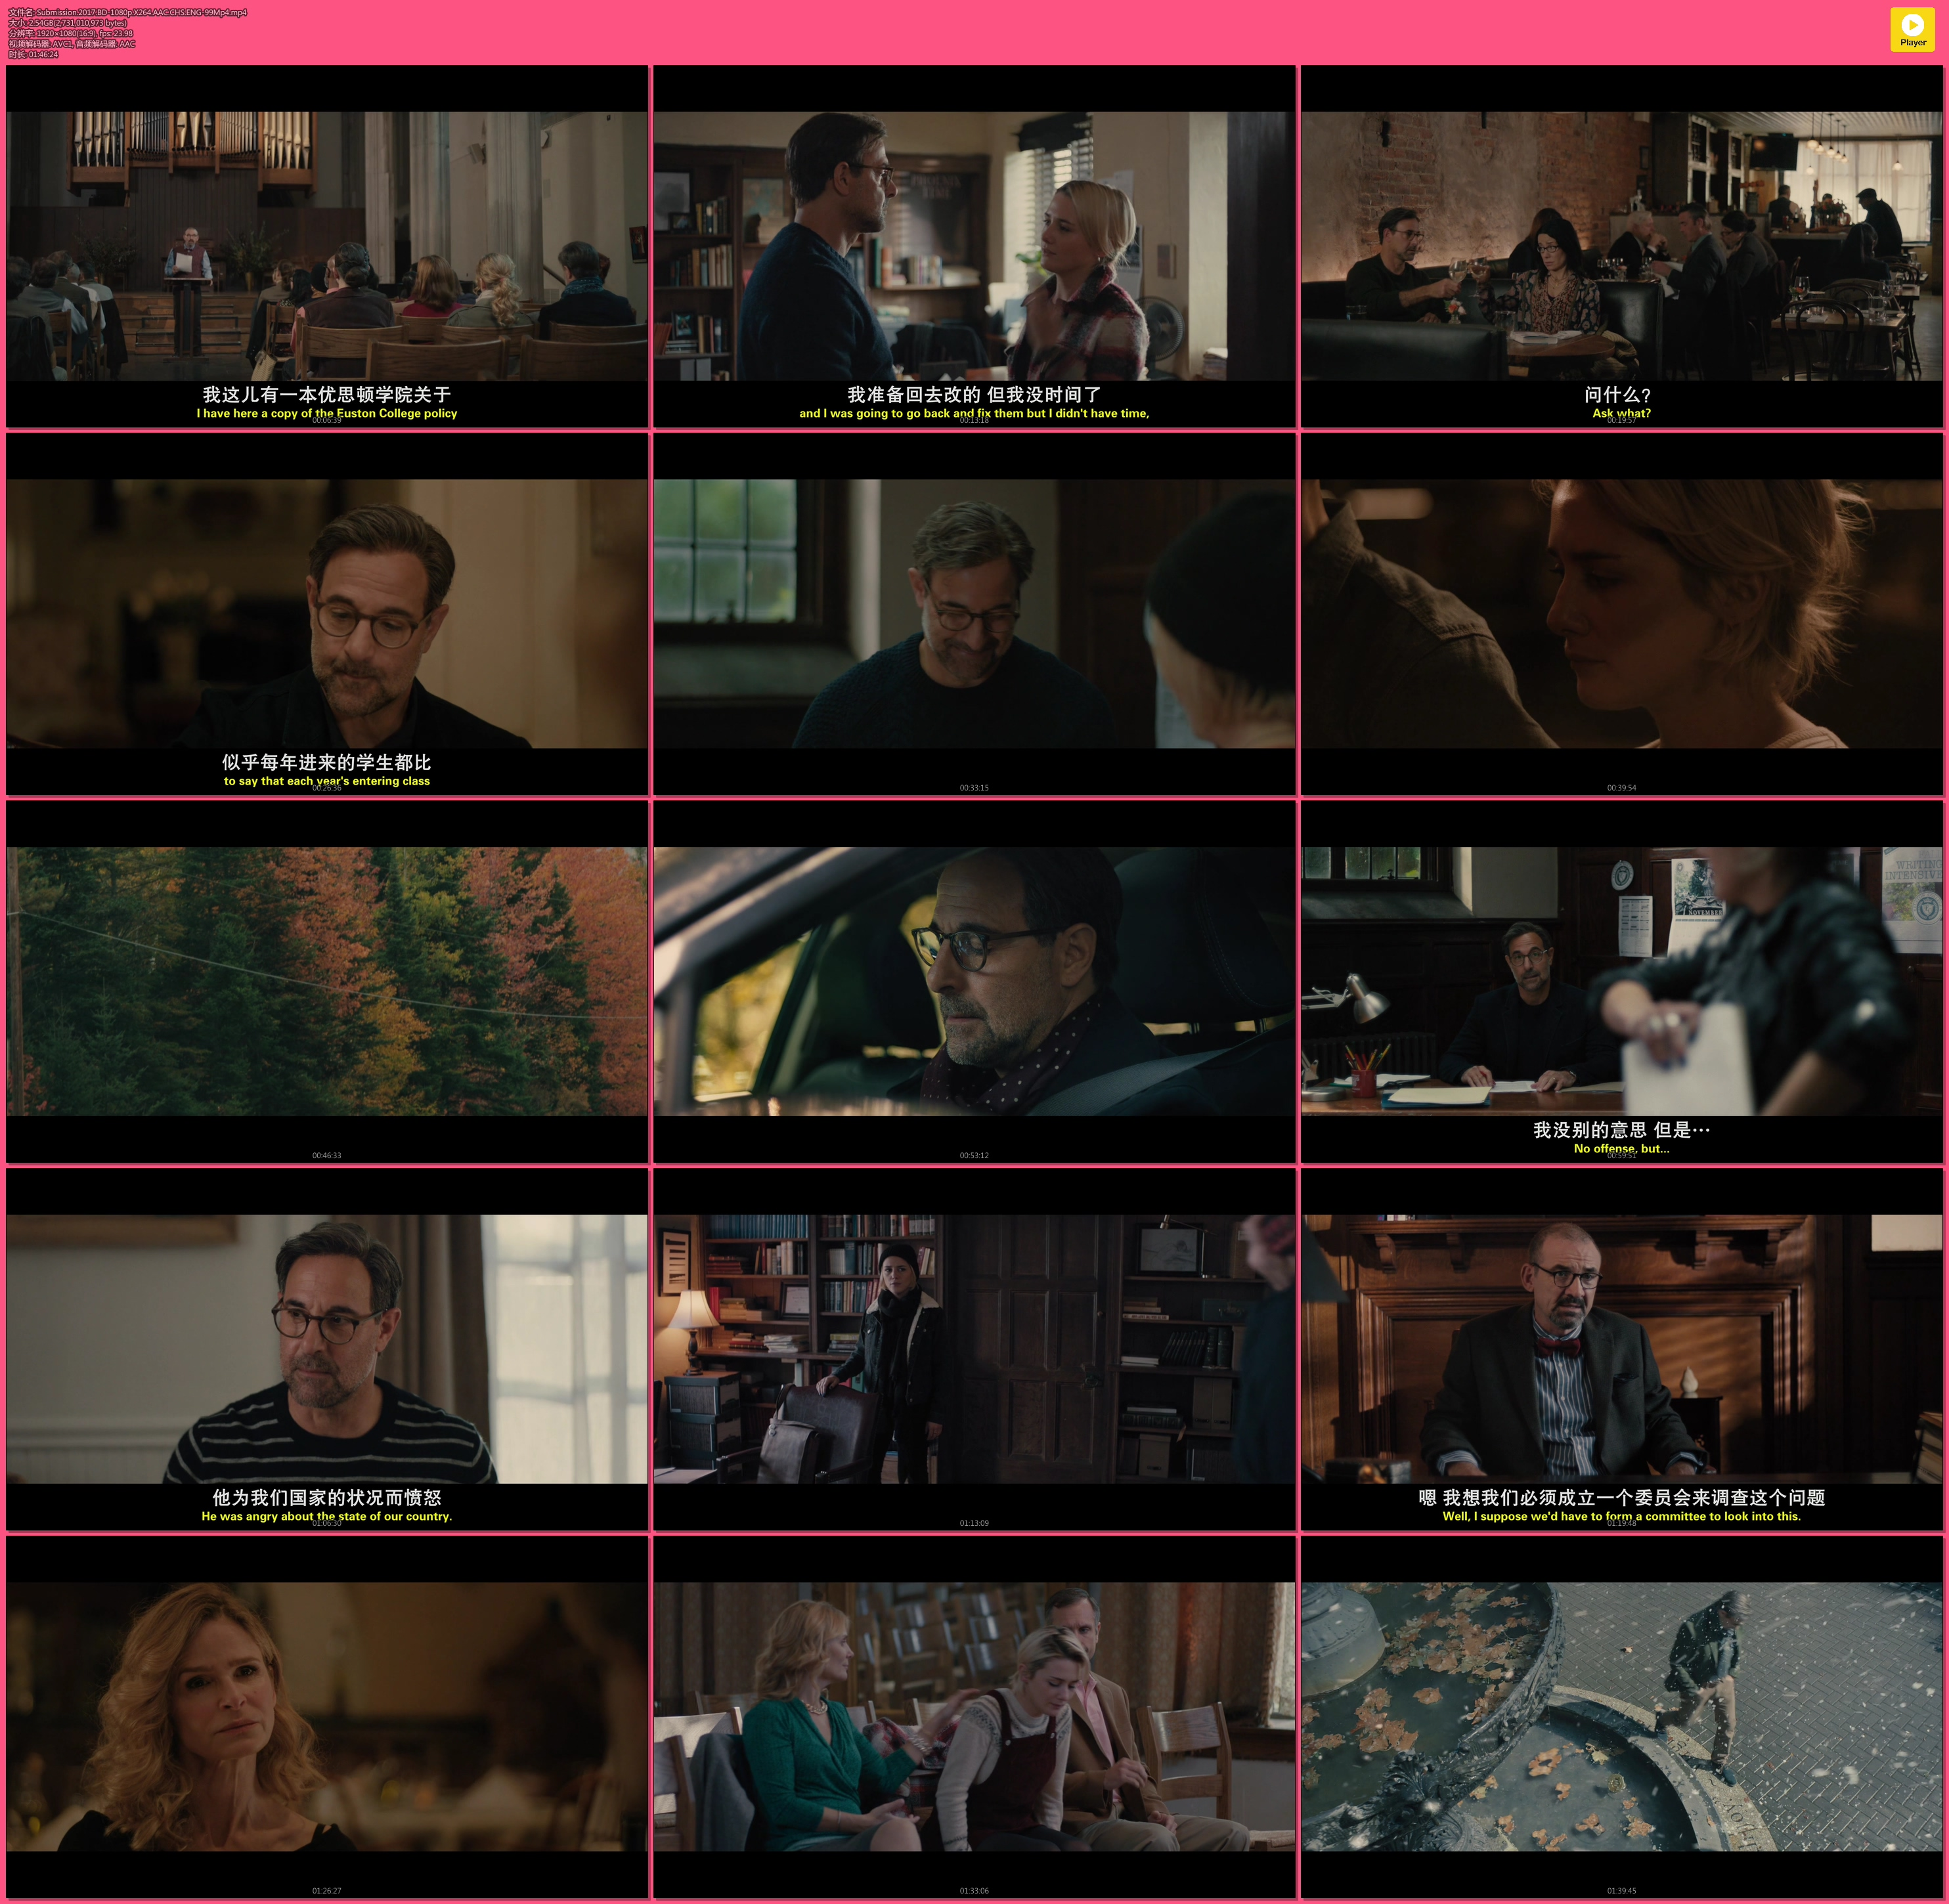 Submission.2017.BD-1080p.X264.AAC.CHS.ENG-99Mp4.mp4.jpg